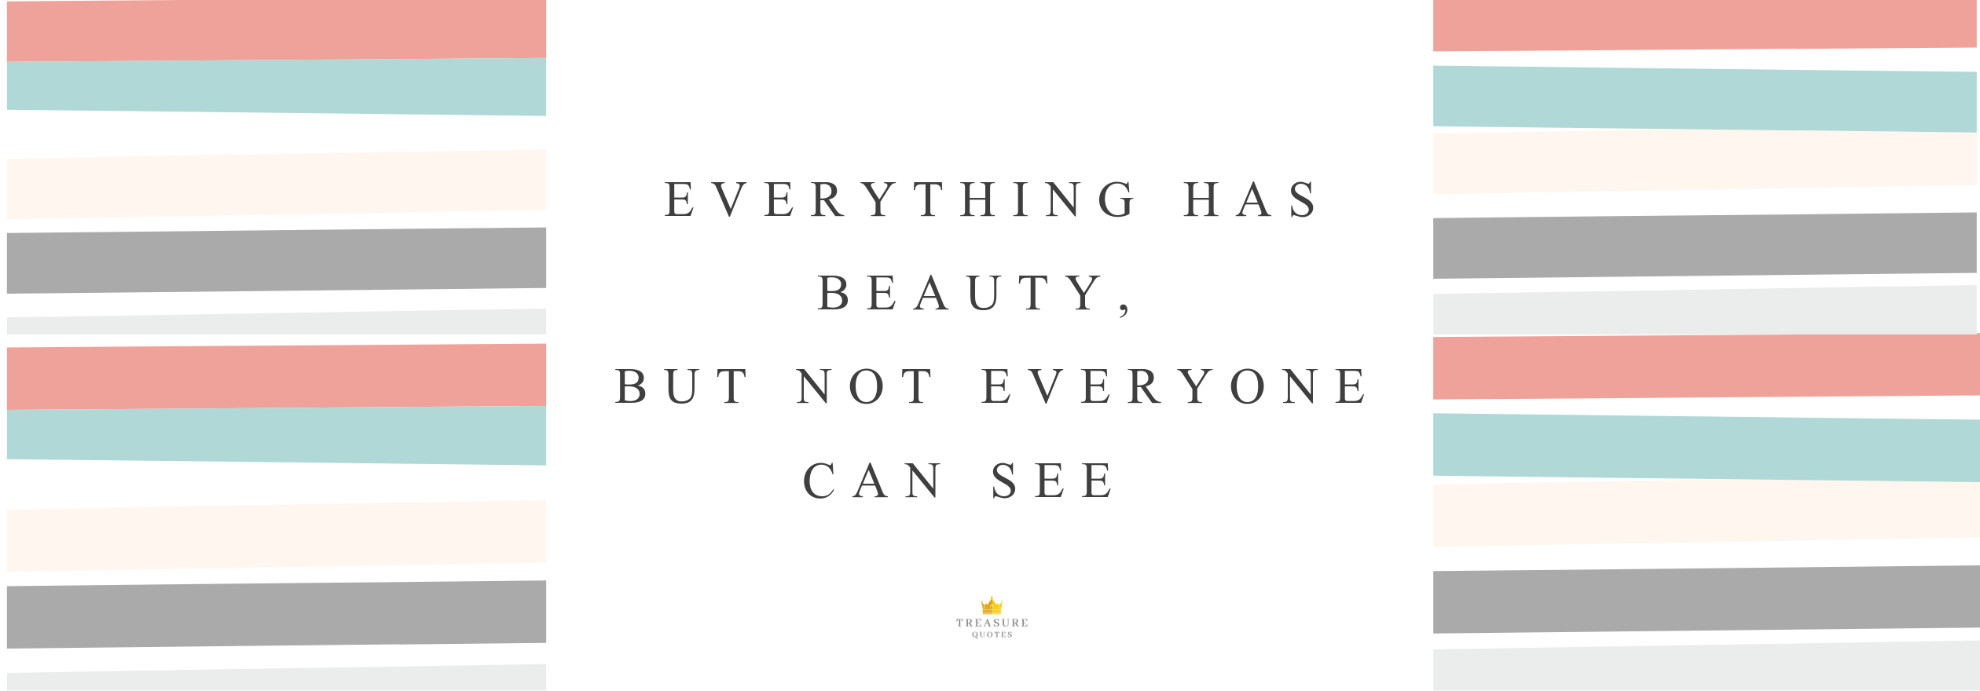 Everything has beauty, but not everyone can se